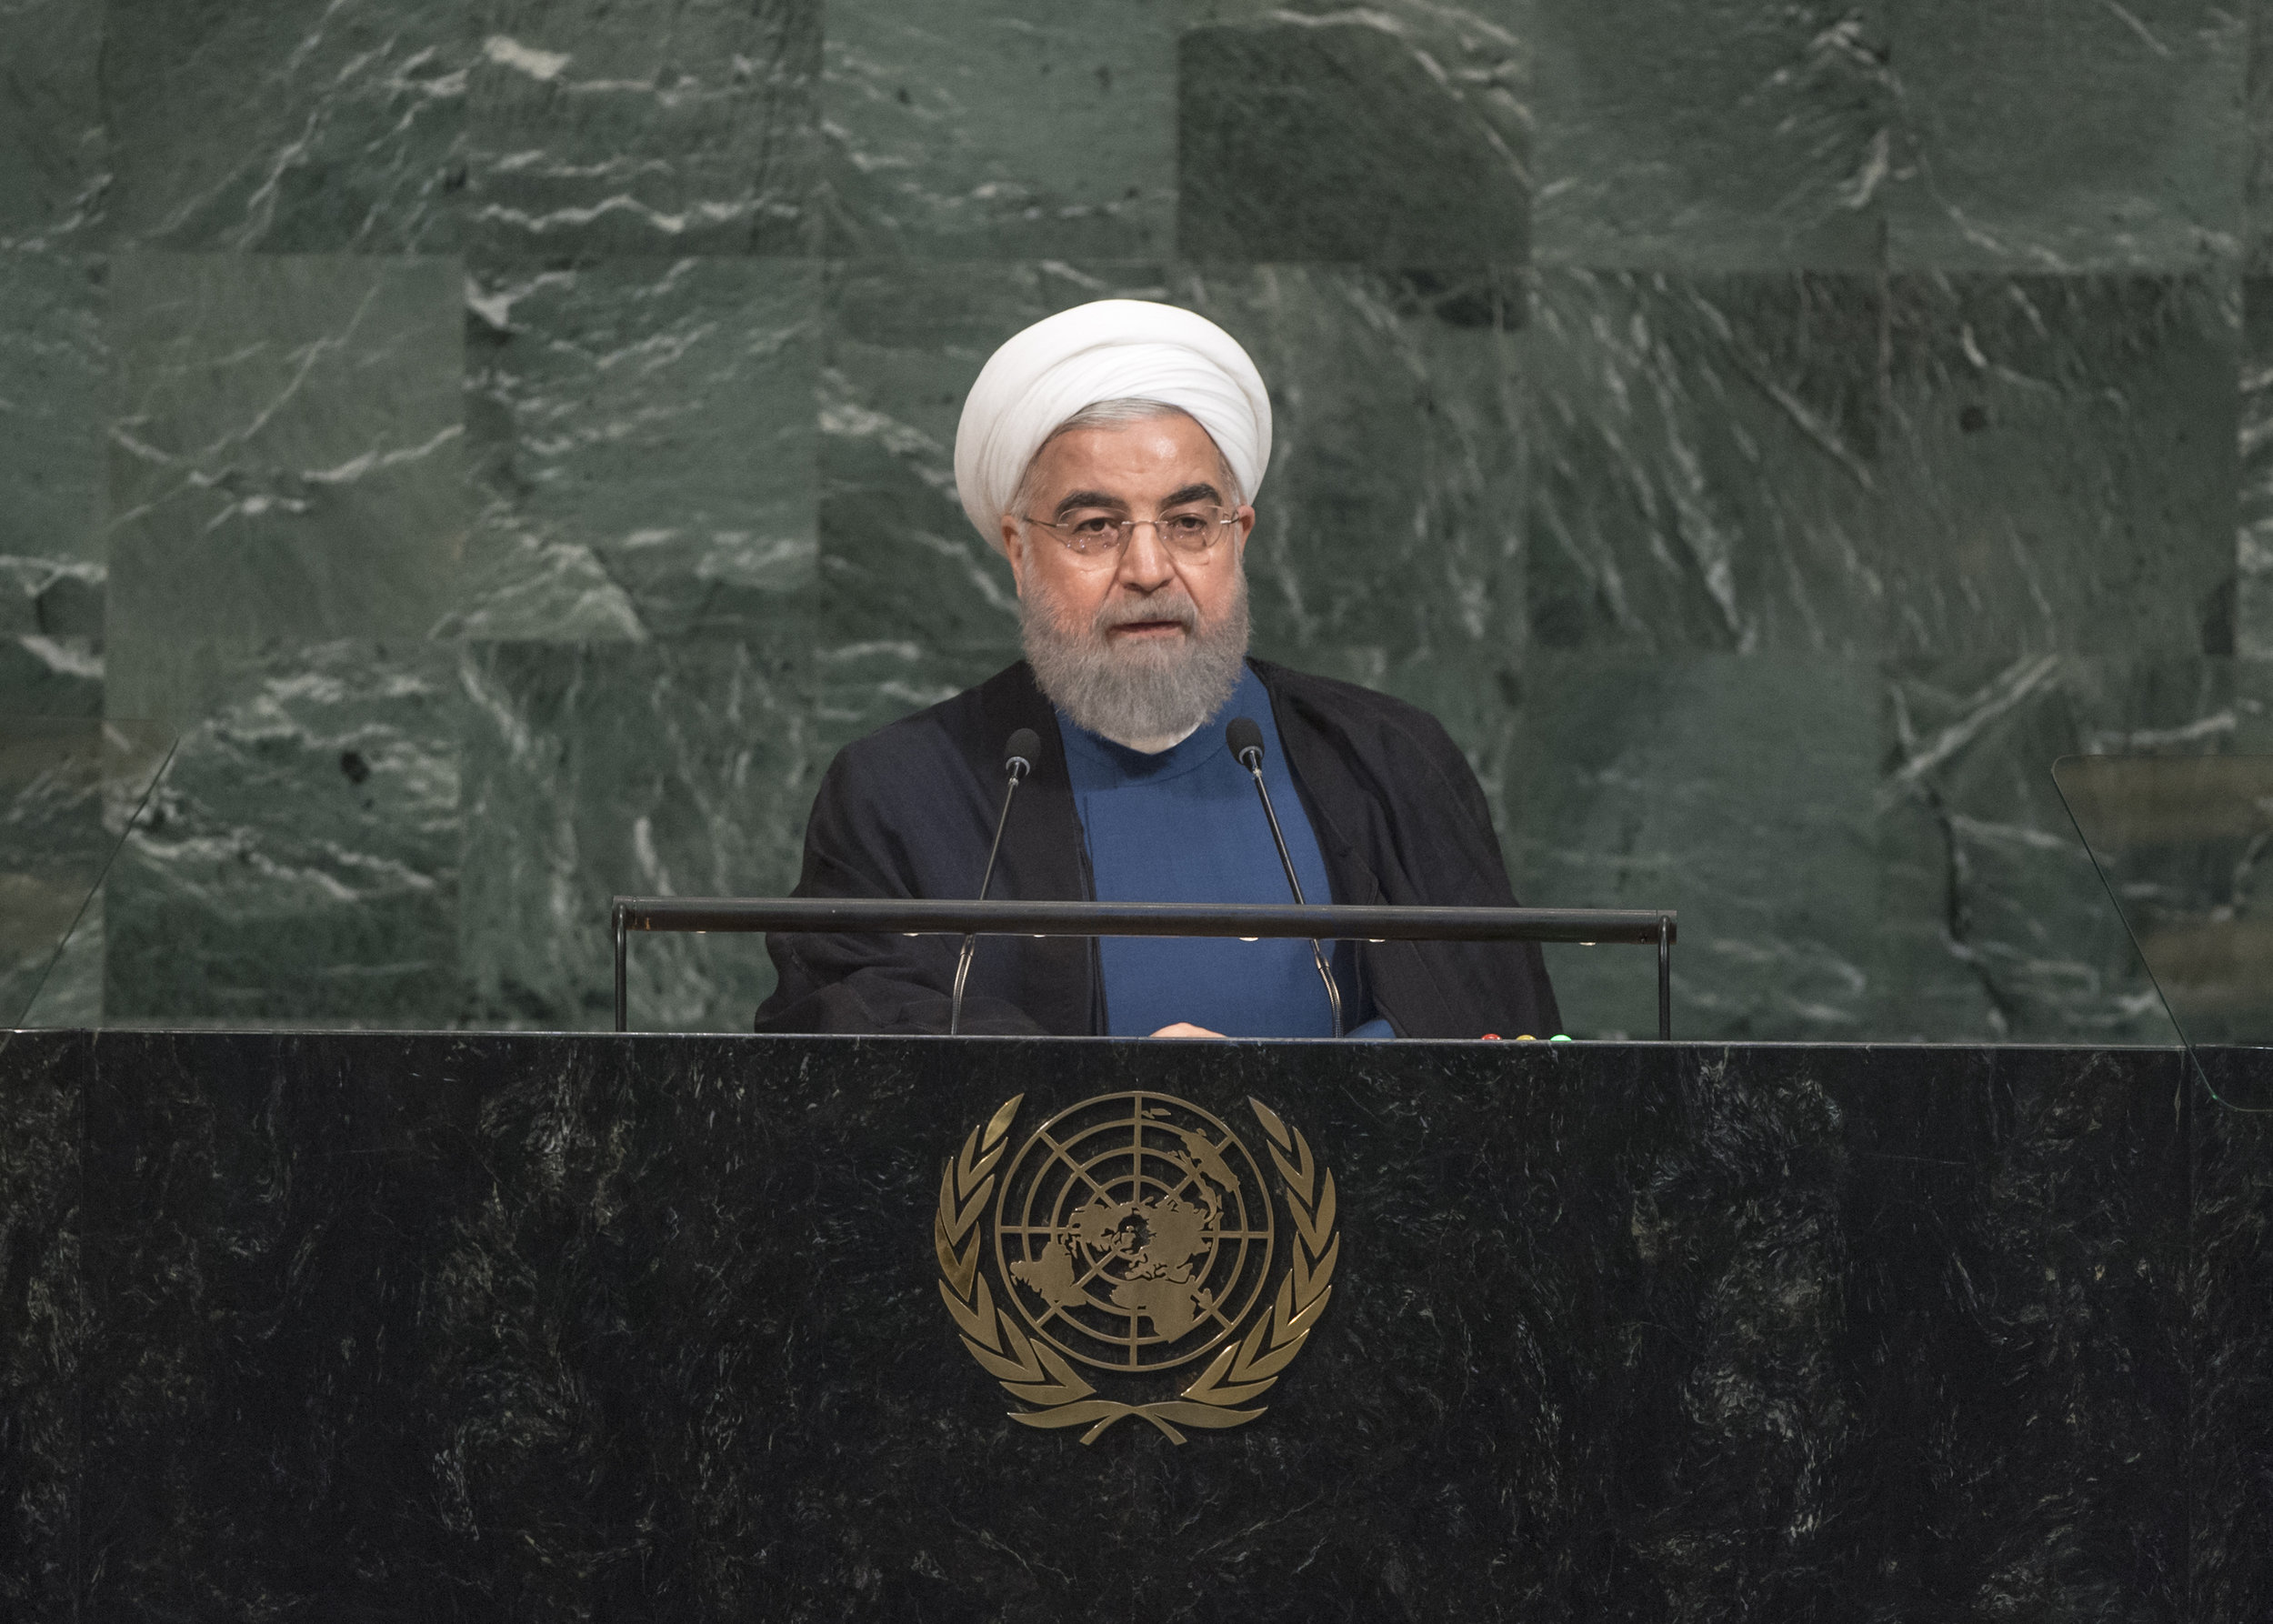 Iranian President Hassan Rouhani addresses the United Nations General Assembly on Sept. 20, 2017. Credit:U.N. Photo/Cia Pak.